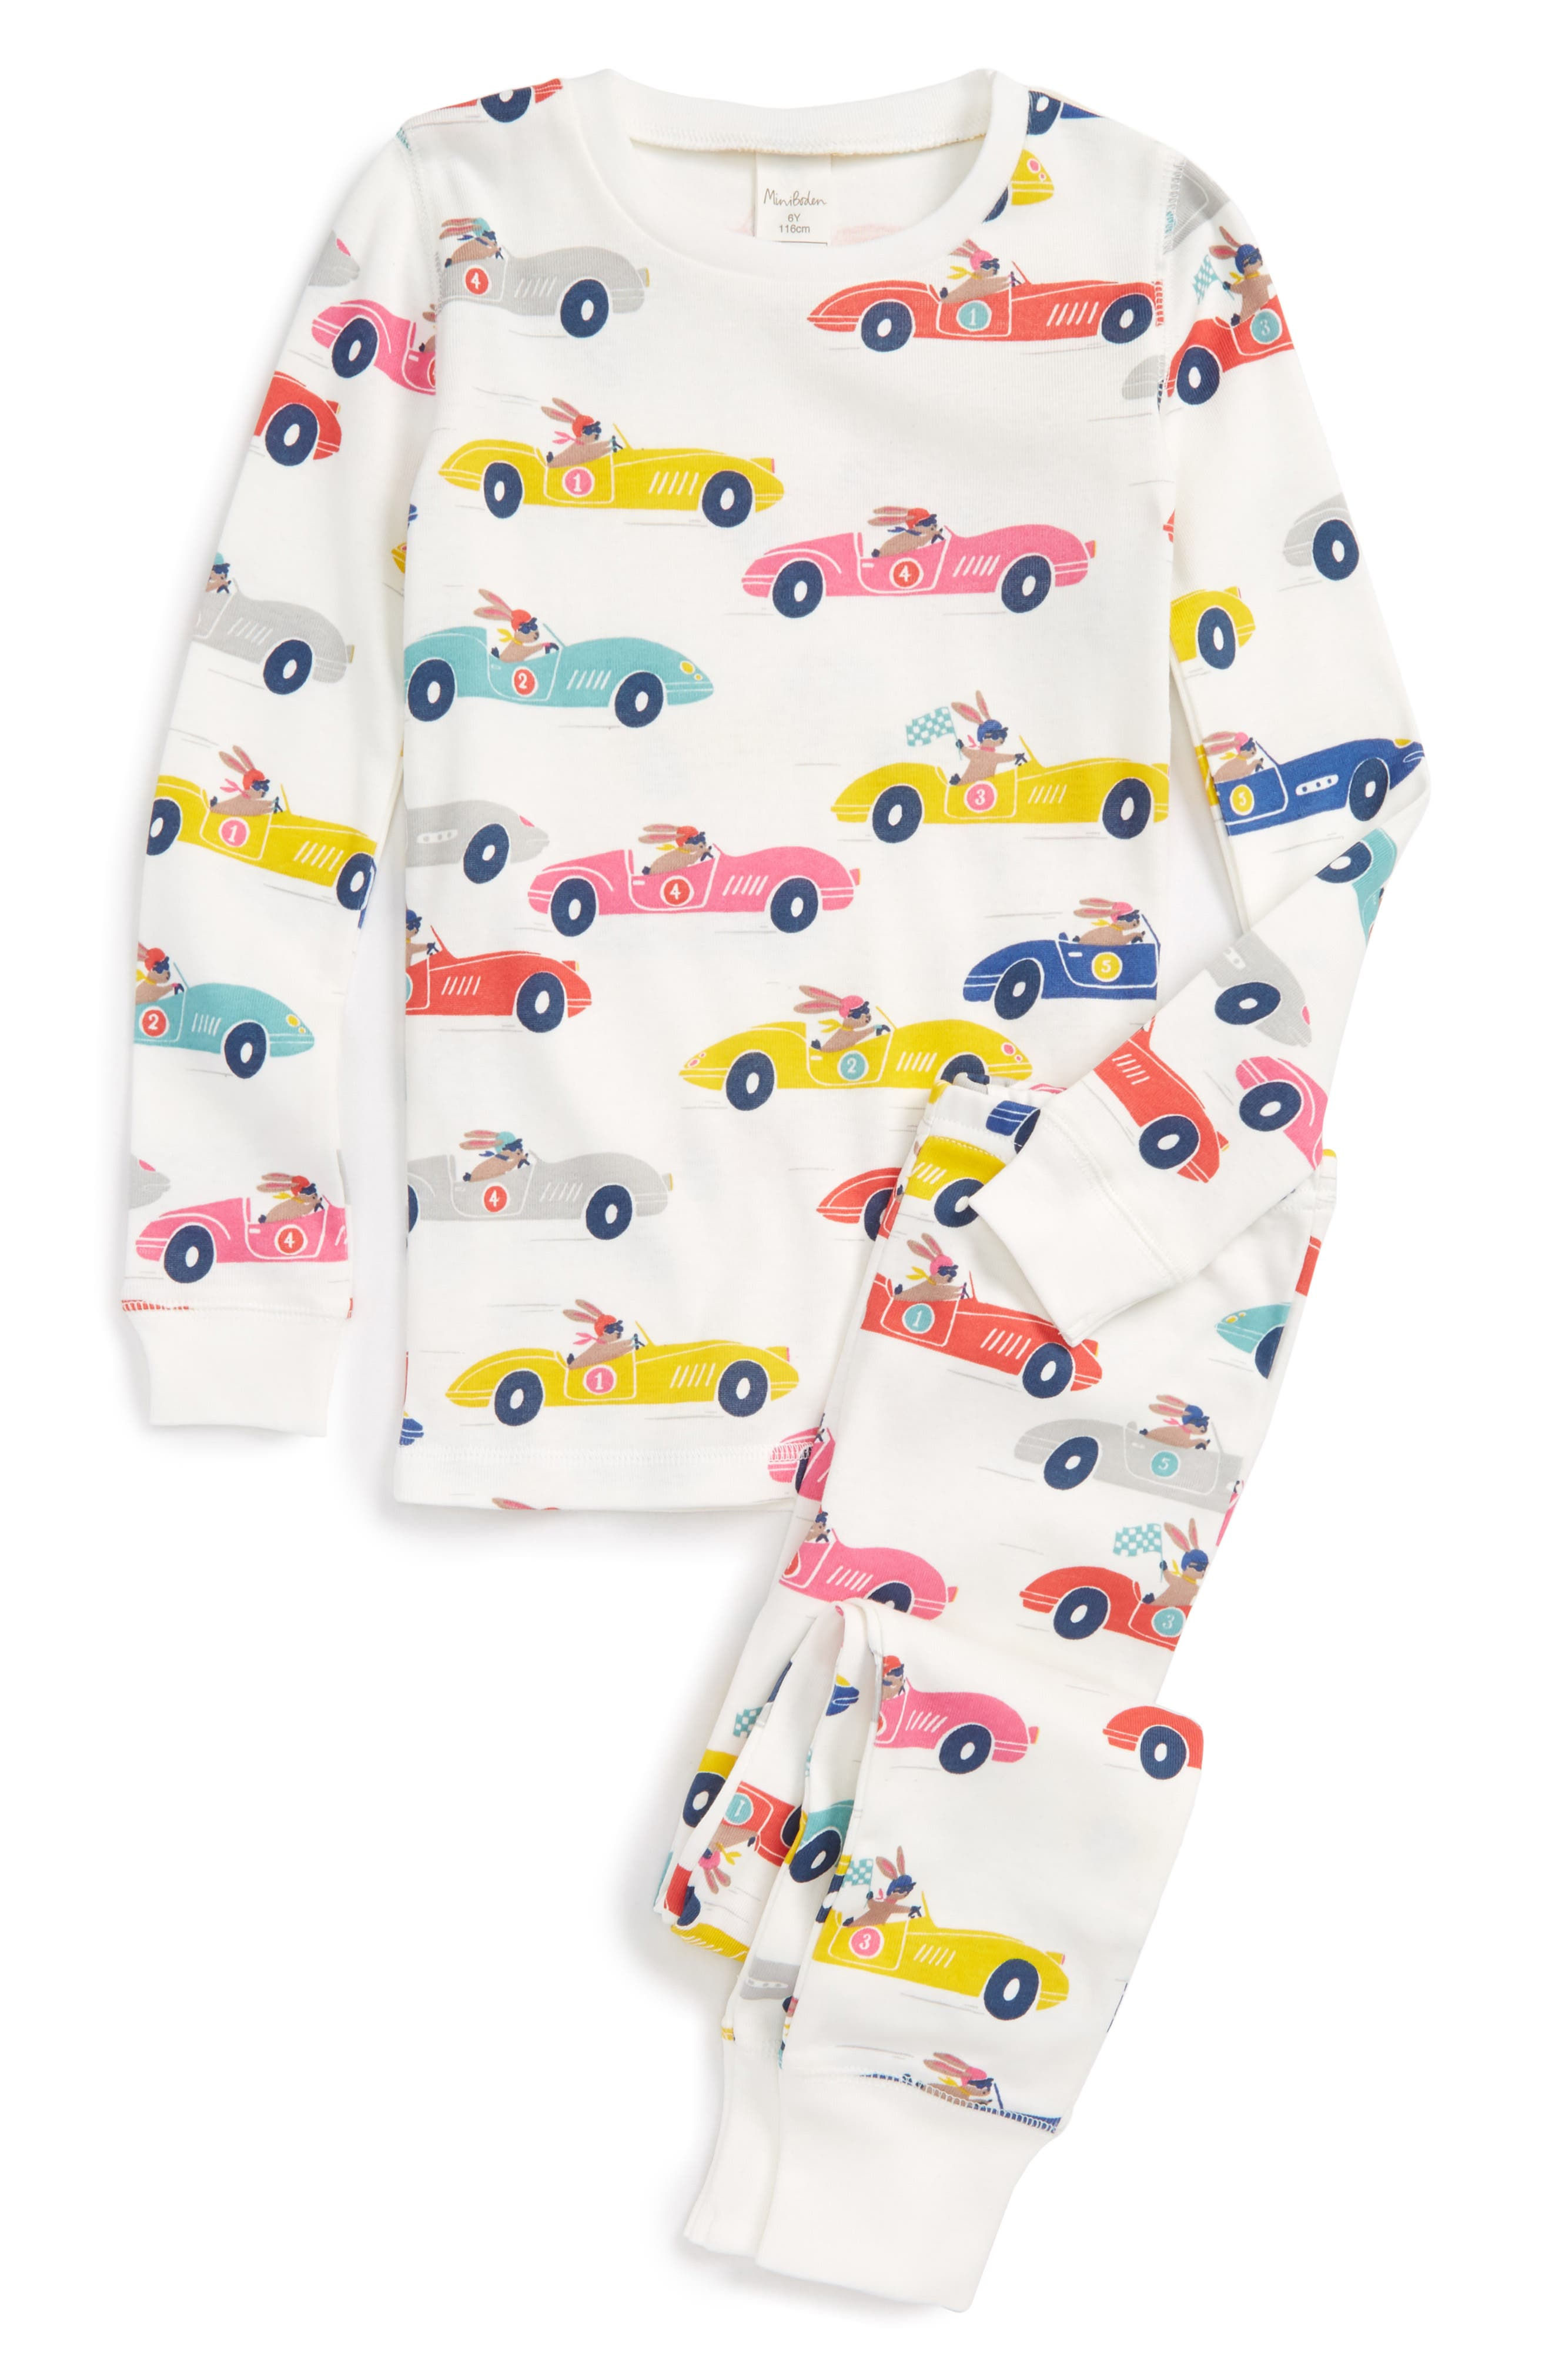 Fitted Two-Piece Pajamas,                         Main,                         color, Mlt Multi Bunny Racer